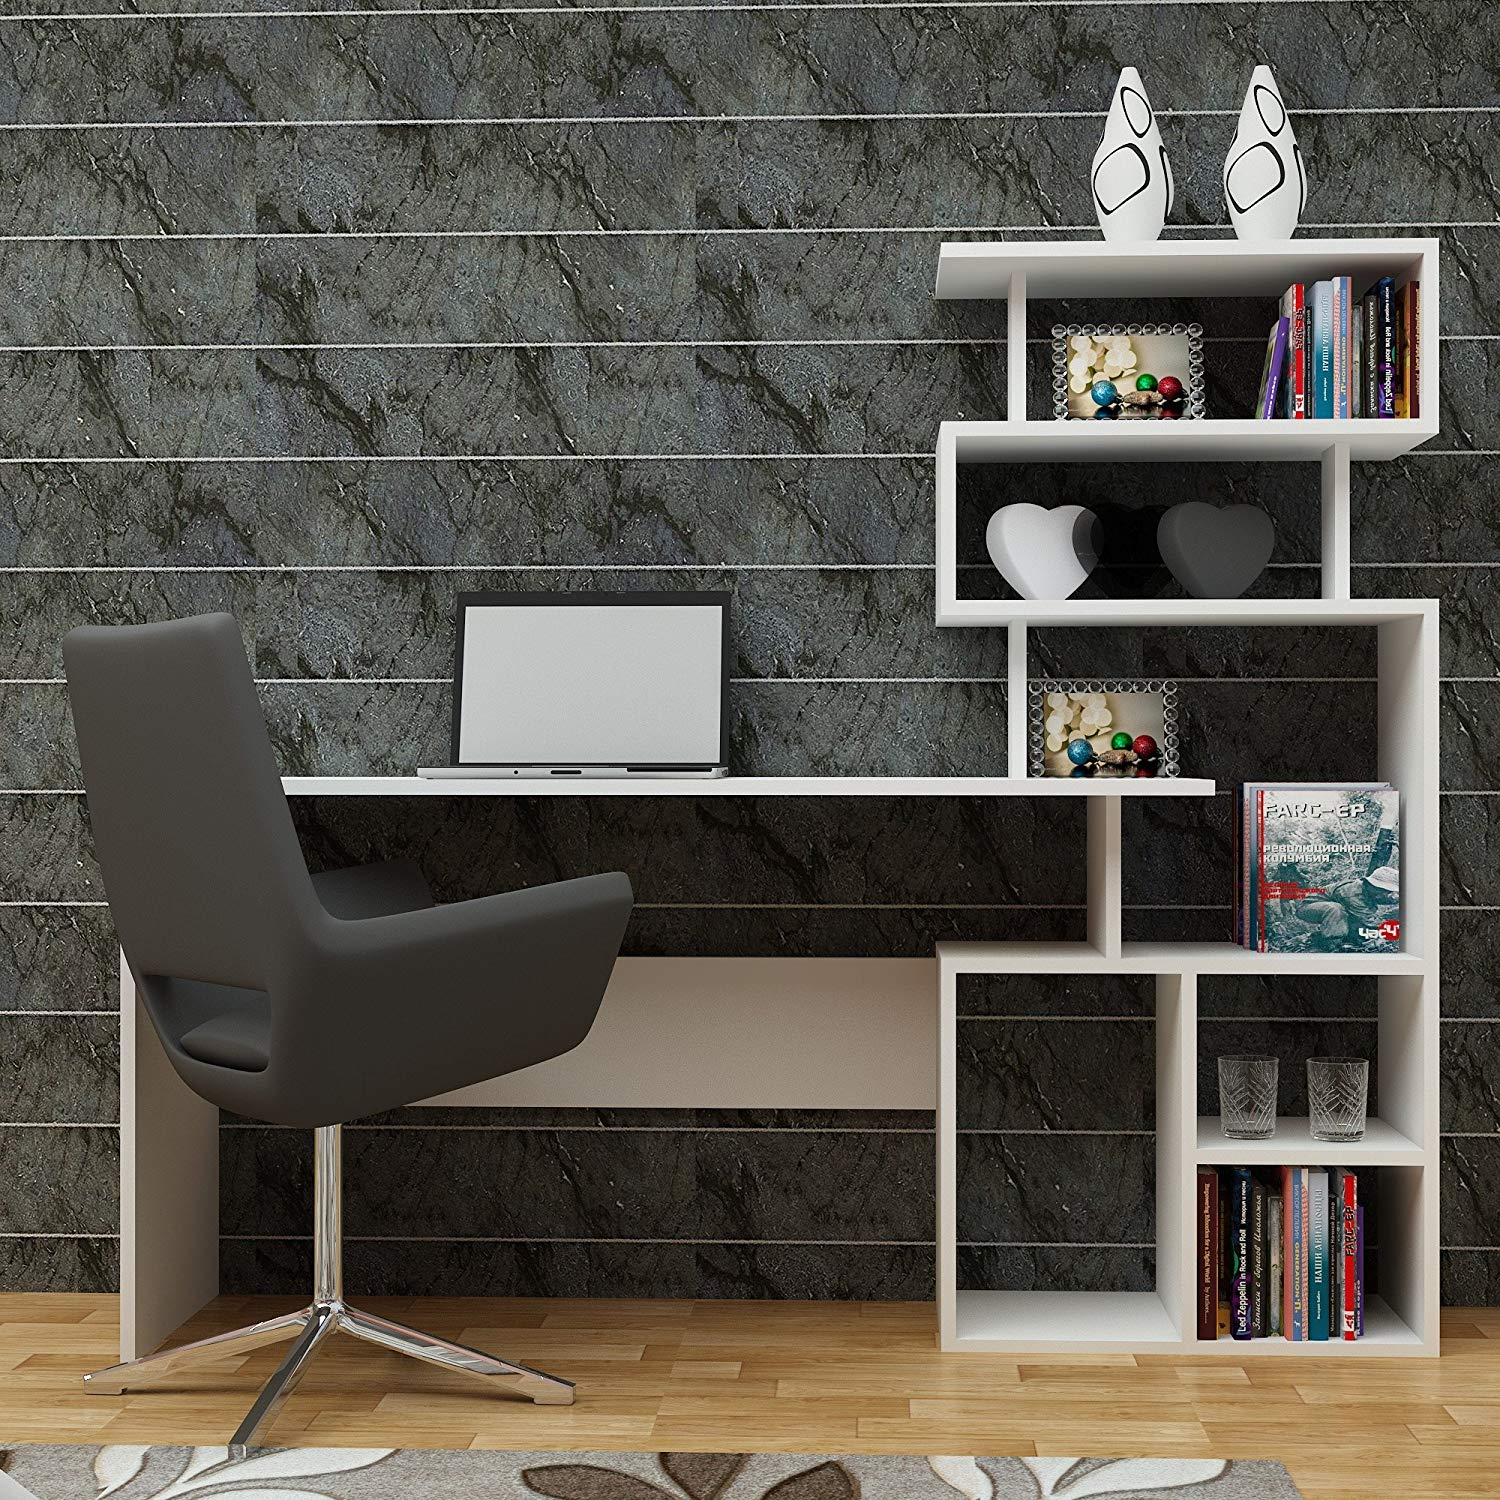 Computer Desk with Bookshelf - Smooth White, One Colored, Multi Functional - Industrial Style Desk for Study & Use as Laptop Table - Perfect for Home, Office, Living Room, Study Room